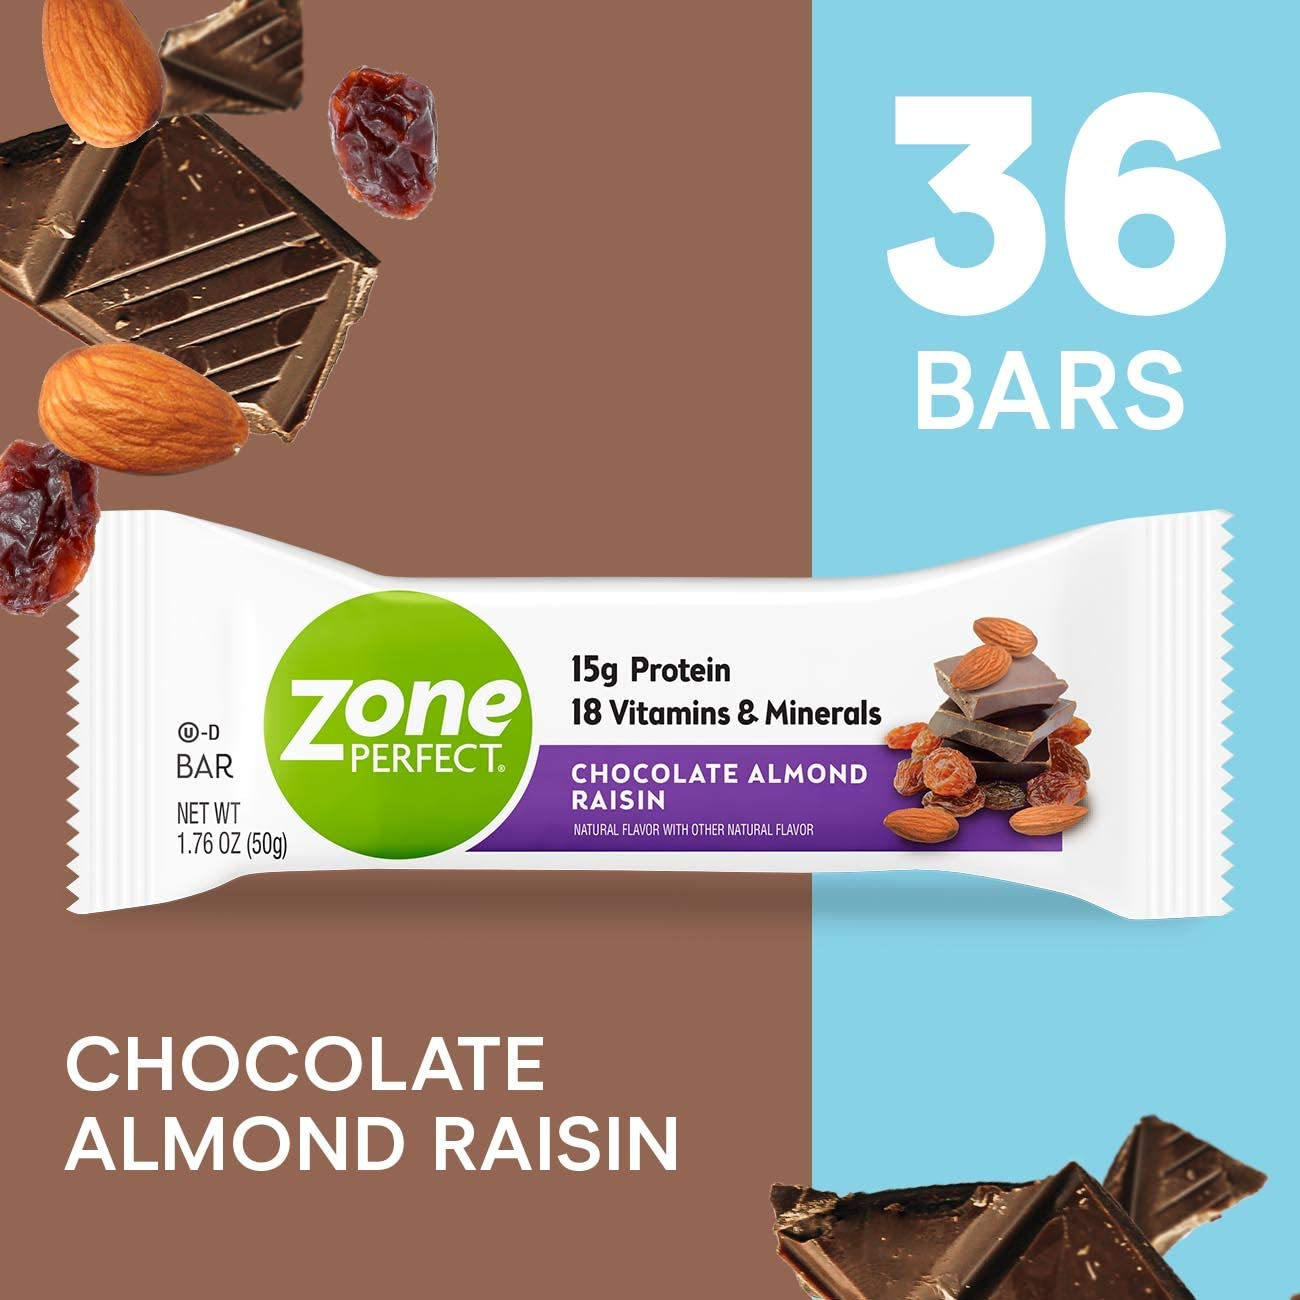 ZonePerfect Protein Bars, Chocolate Almond Raisin, 15g of Protein, Nutrition Bars with Vitamins Minerals, Great Taste Guaranteed, 36 Bars